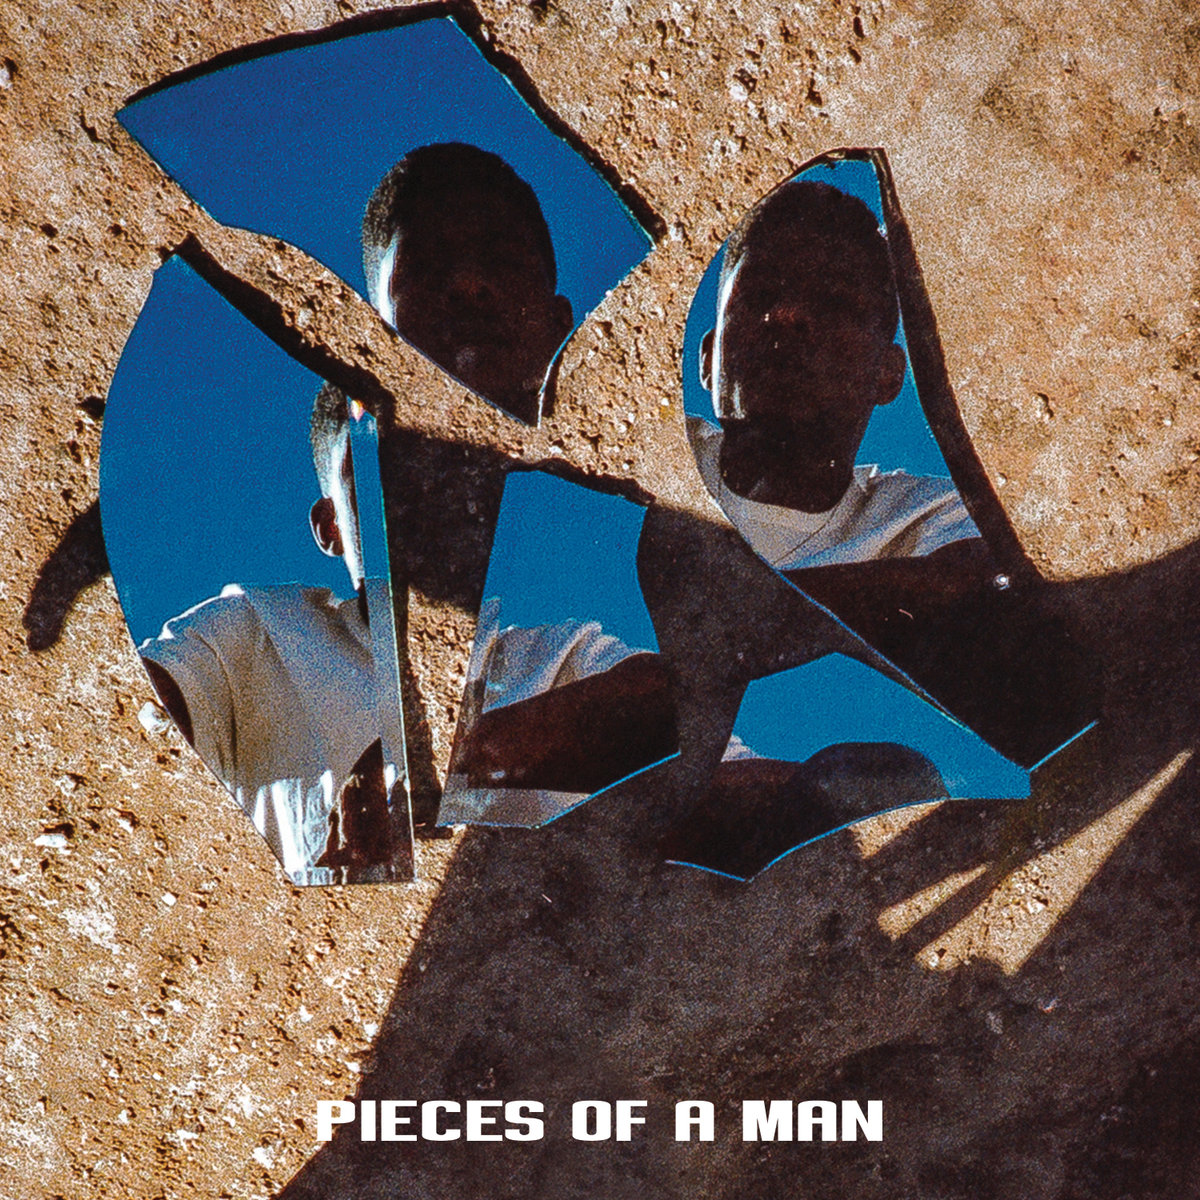 New Music & UK Dates / Mick Jenkins: Pieces Of A Man